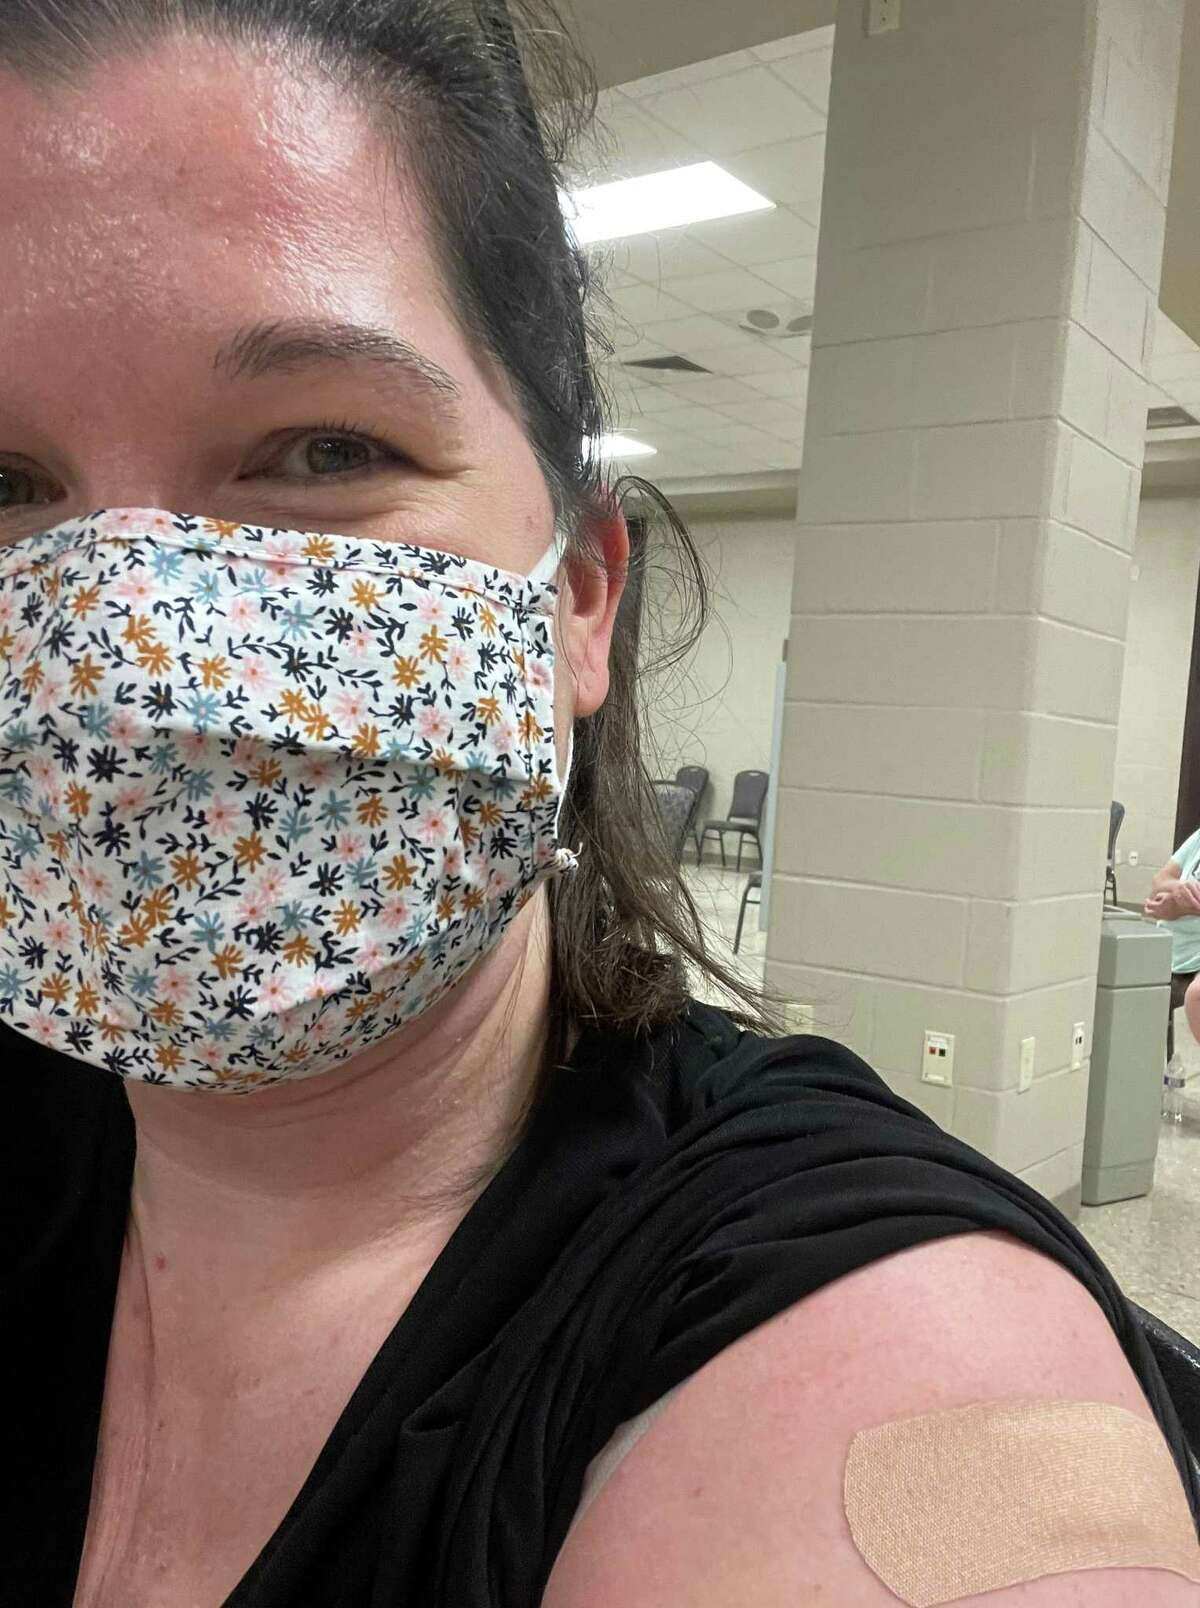 Keri Brown, a 42-year-old Houstonian, received her COVID-19 vaccine in Orange, Texas. She said the hardest part was taking off the Band-Aid.